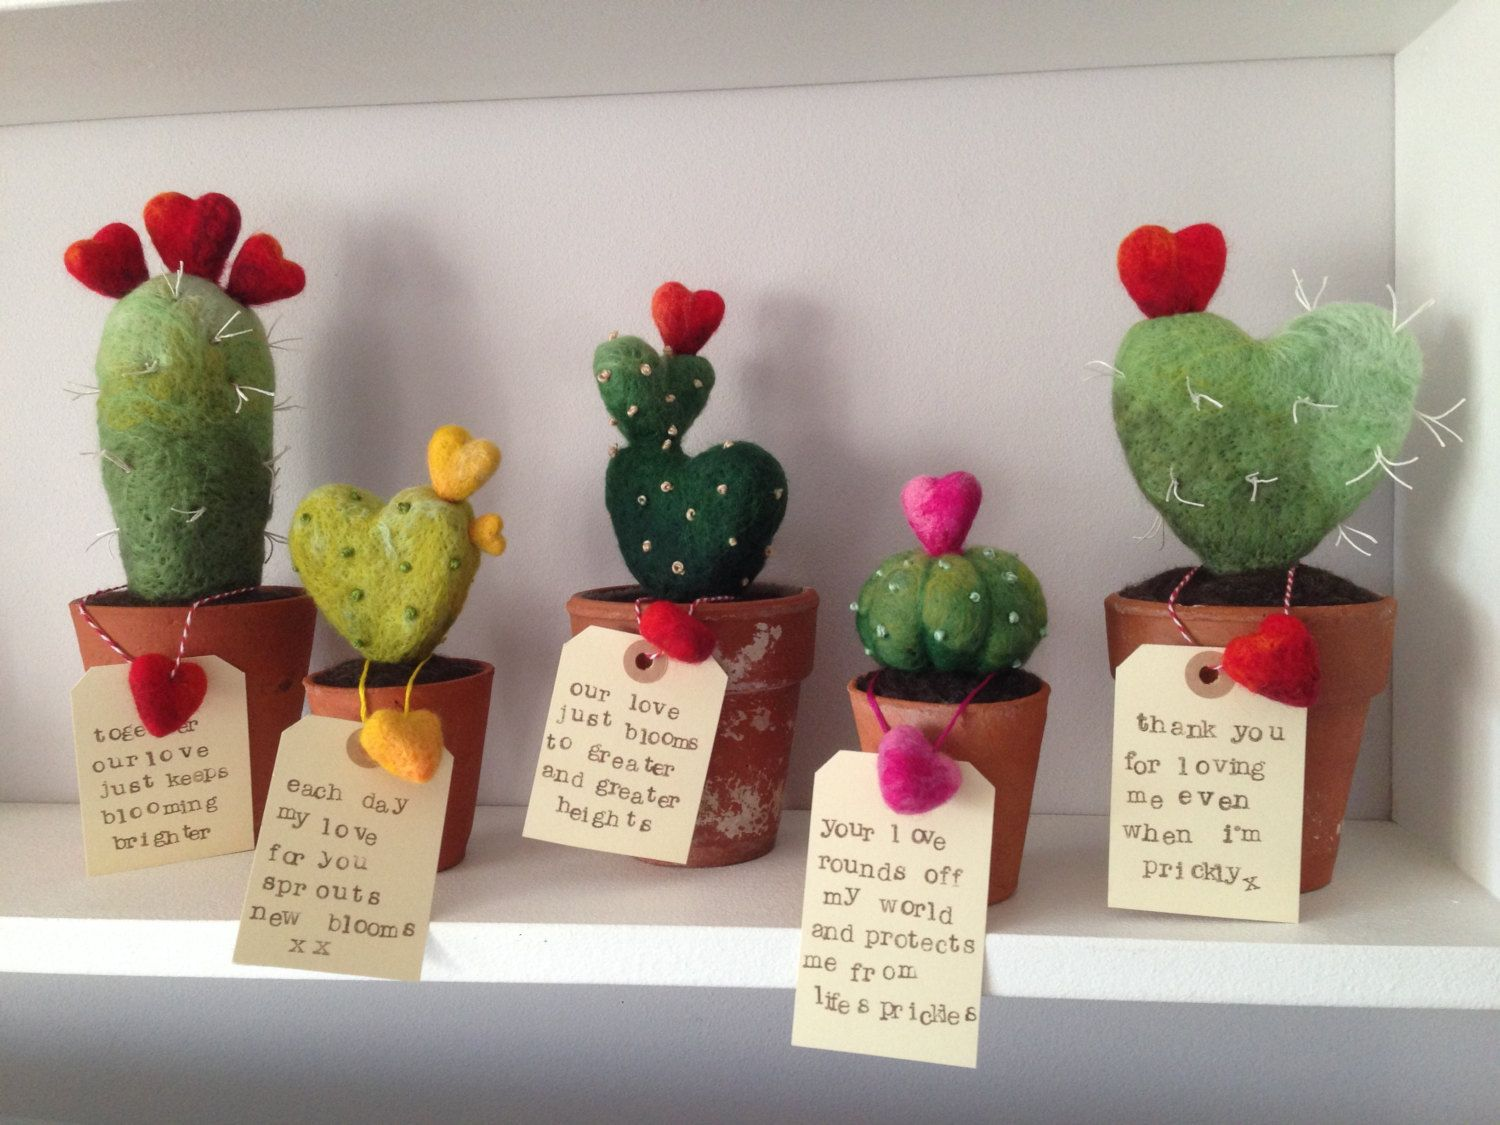 Cactus Arredamento ~ This cute needle felted cactus has touch friendly prickles and